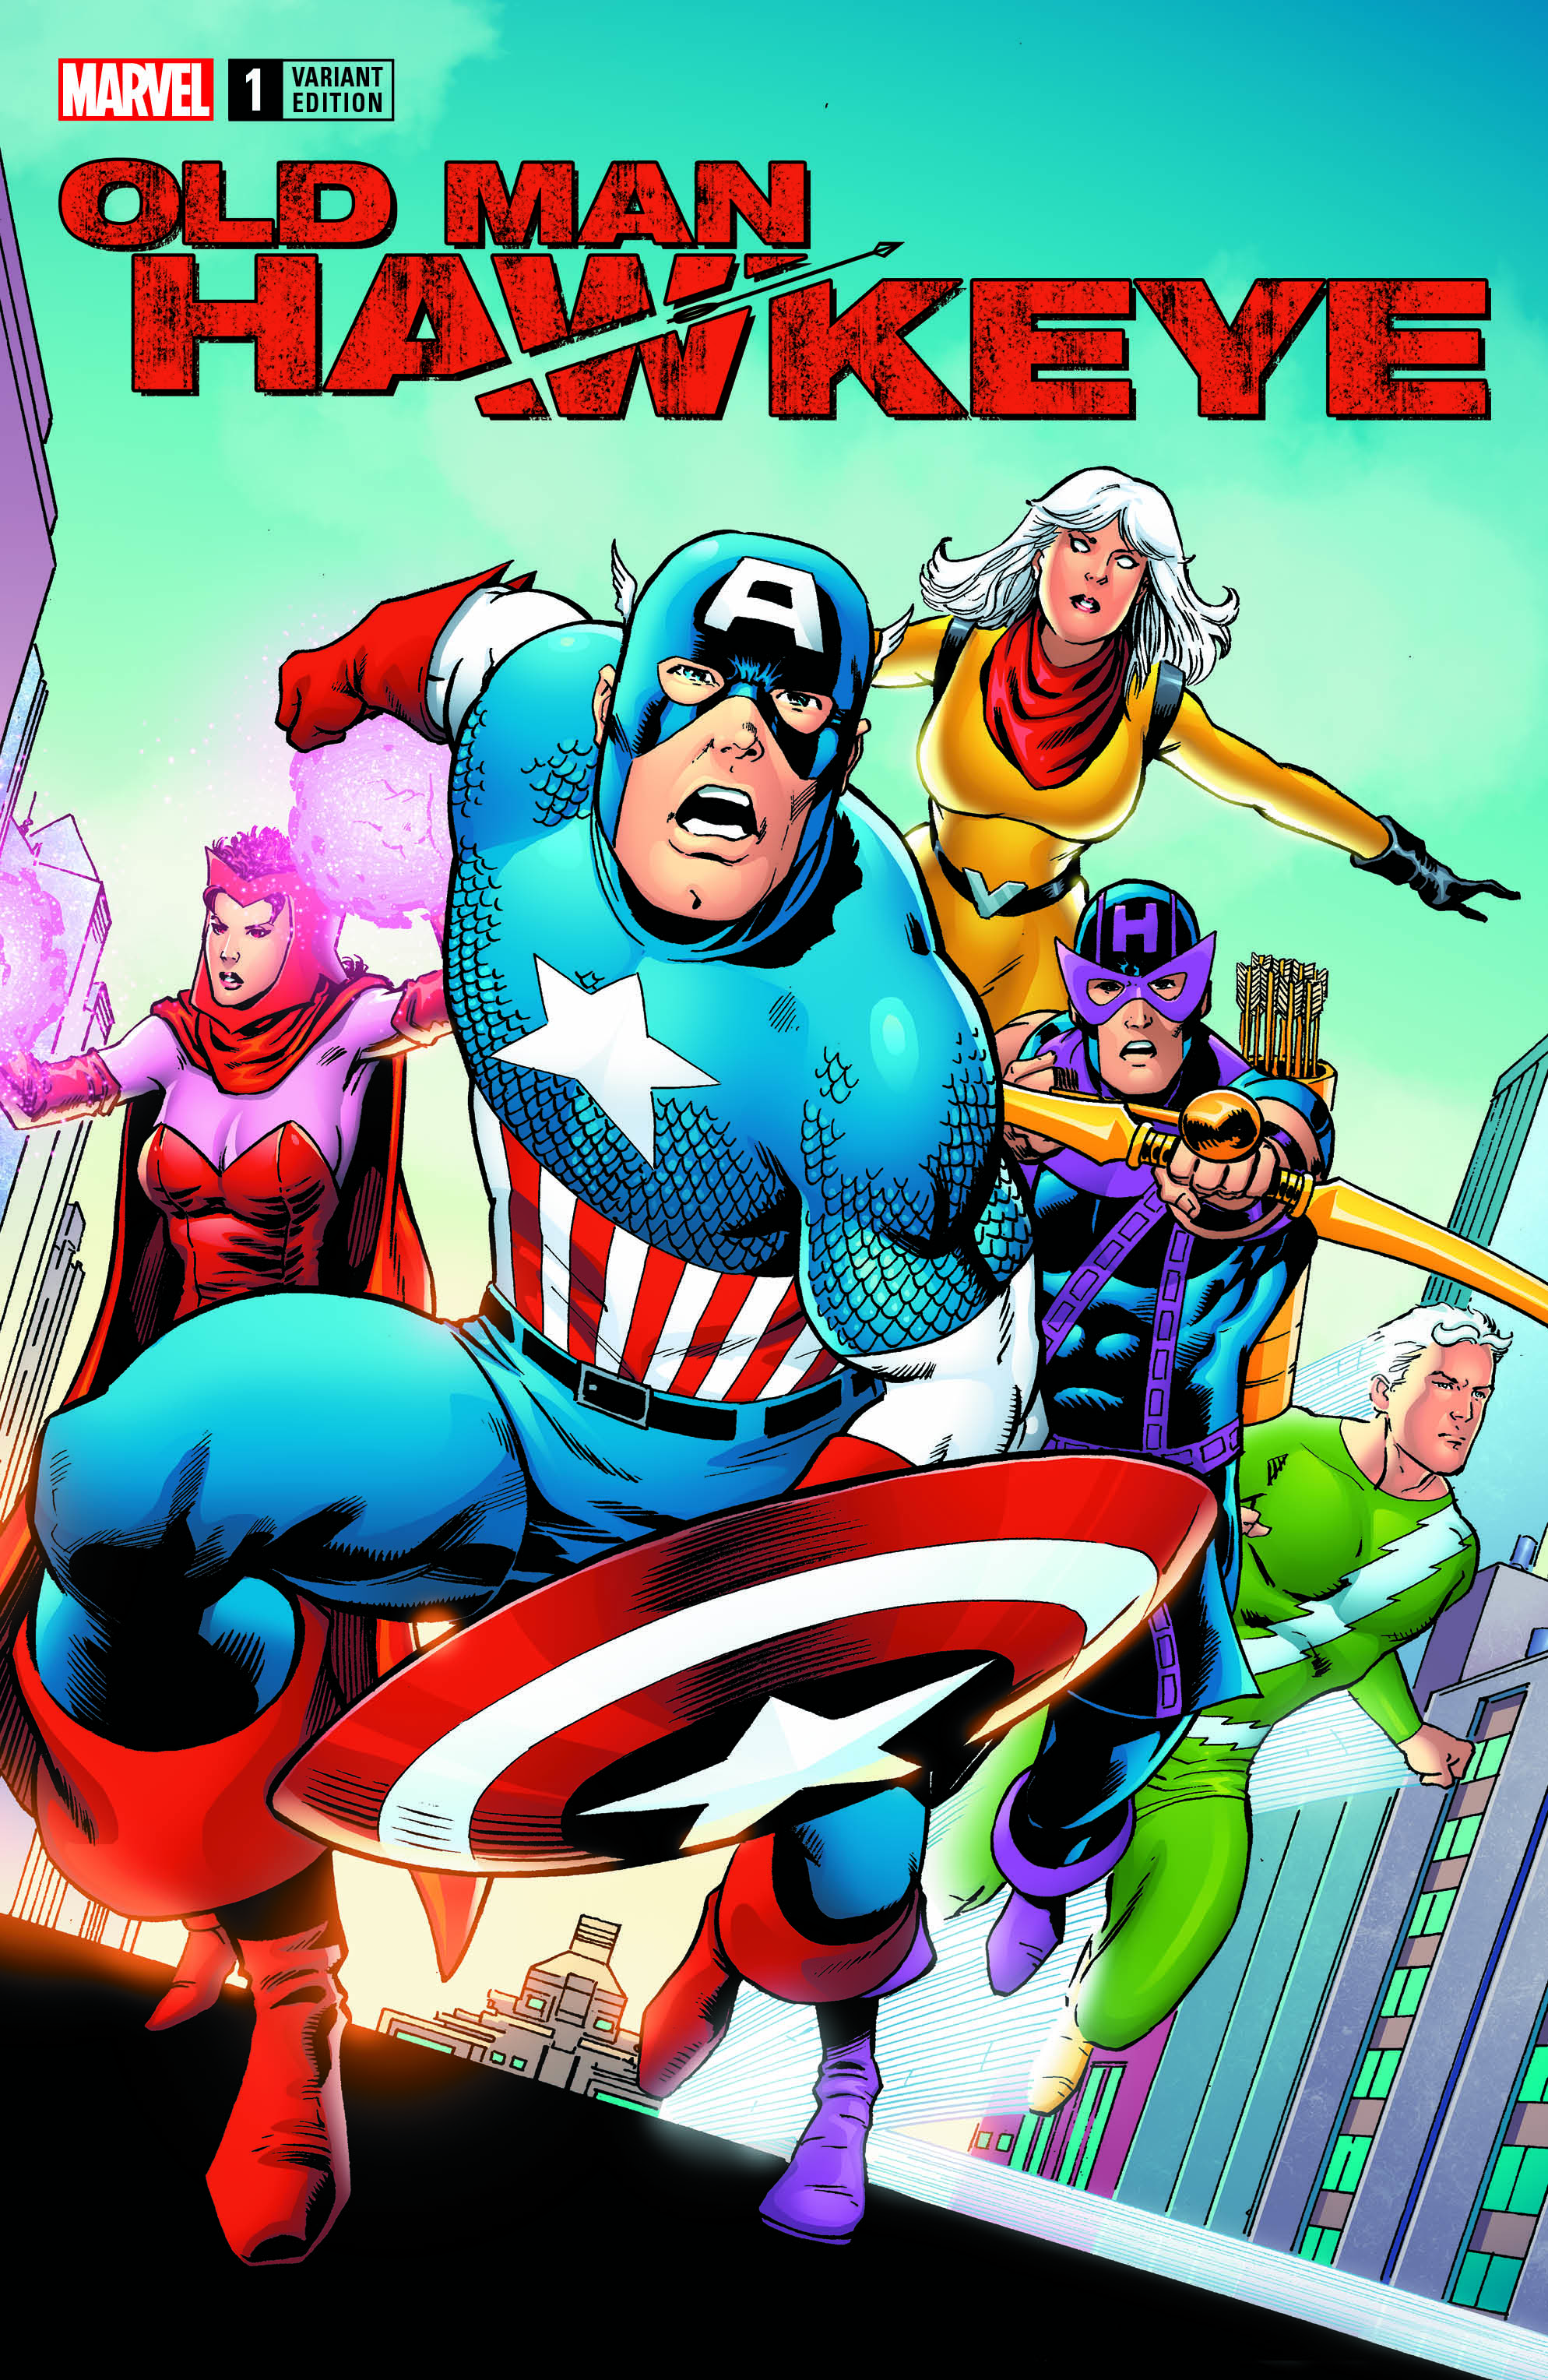 Marvel s avengers variants celebrate earth s mightiest heroes first comics news - Heros avengers ...